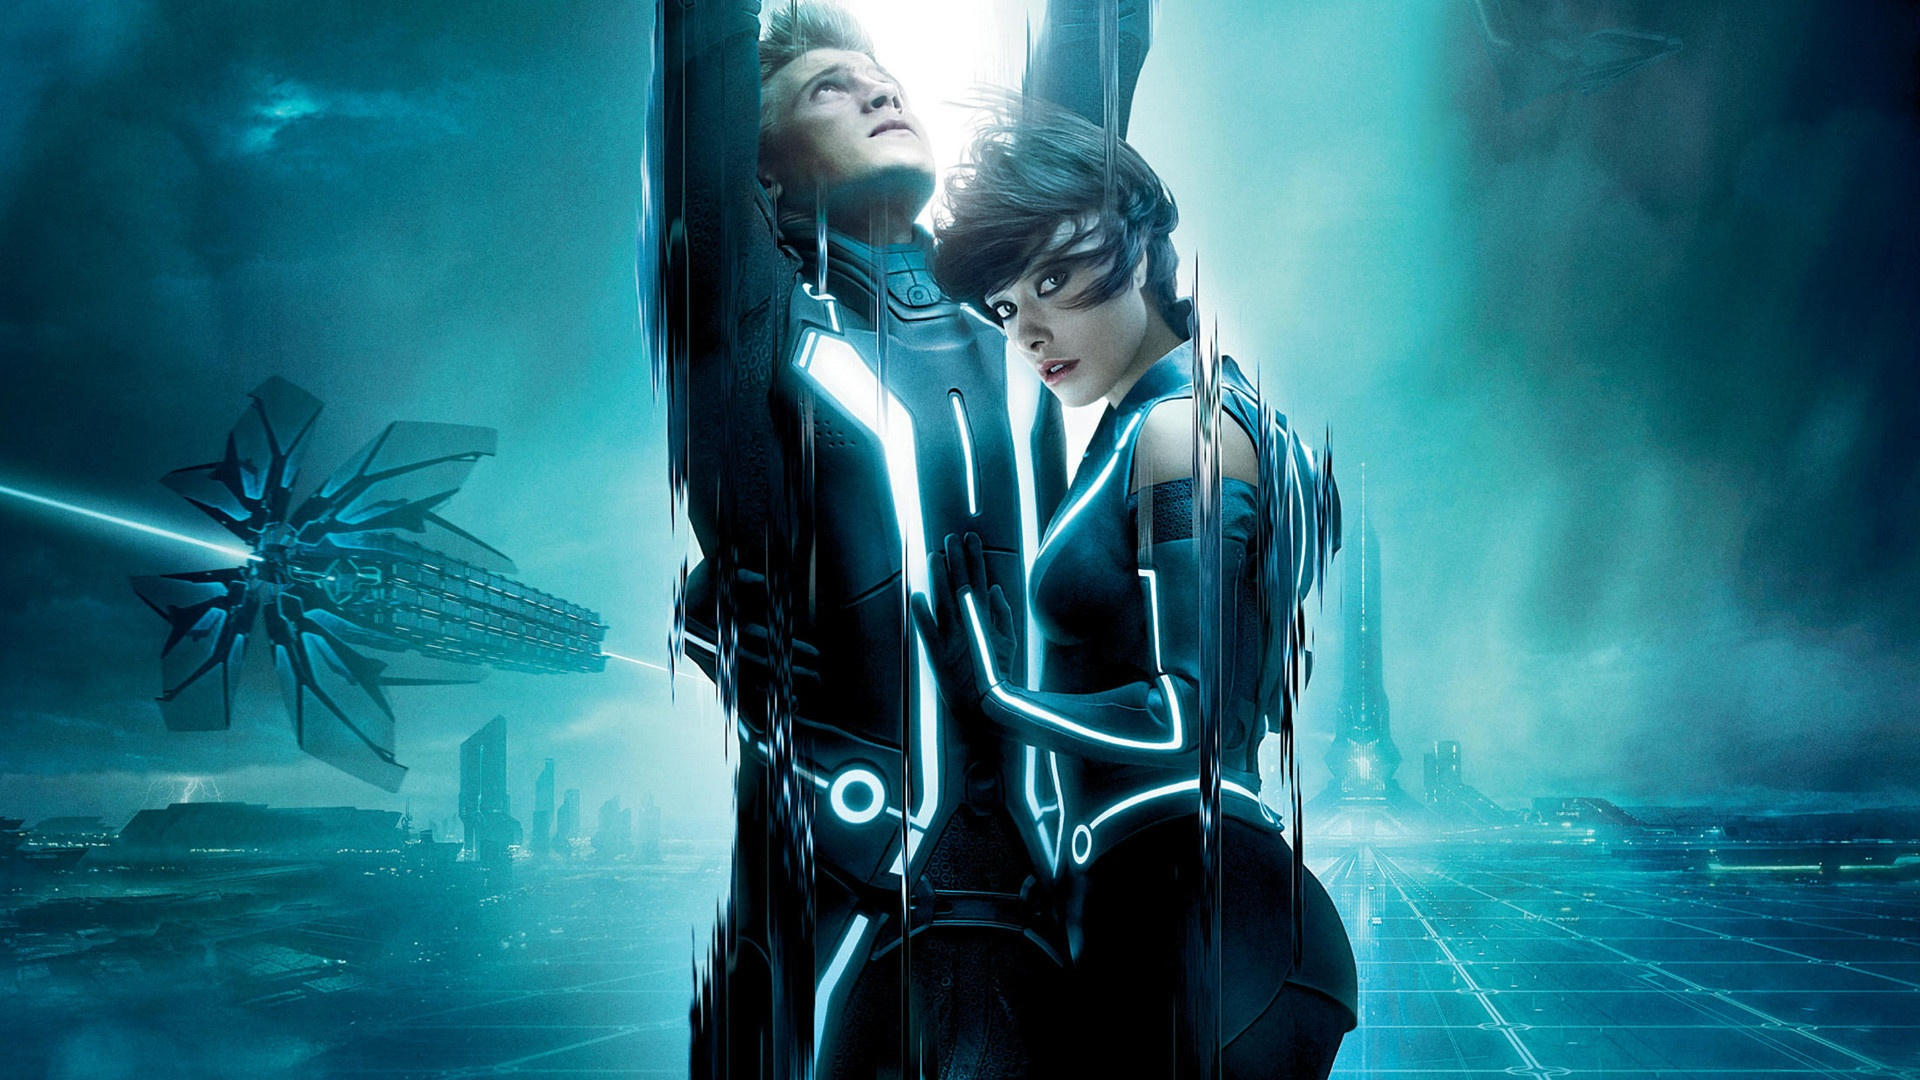 tron wallpapers movie hd